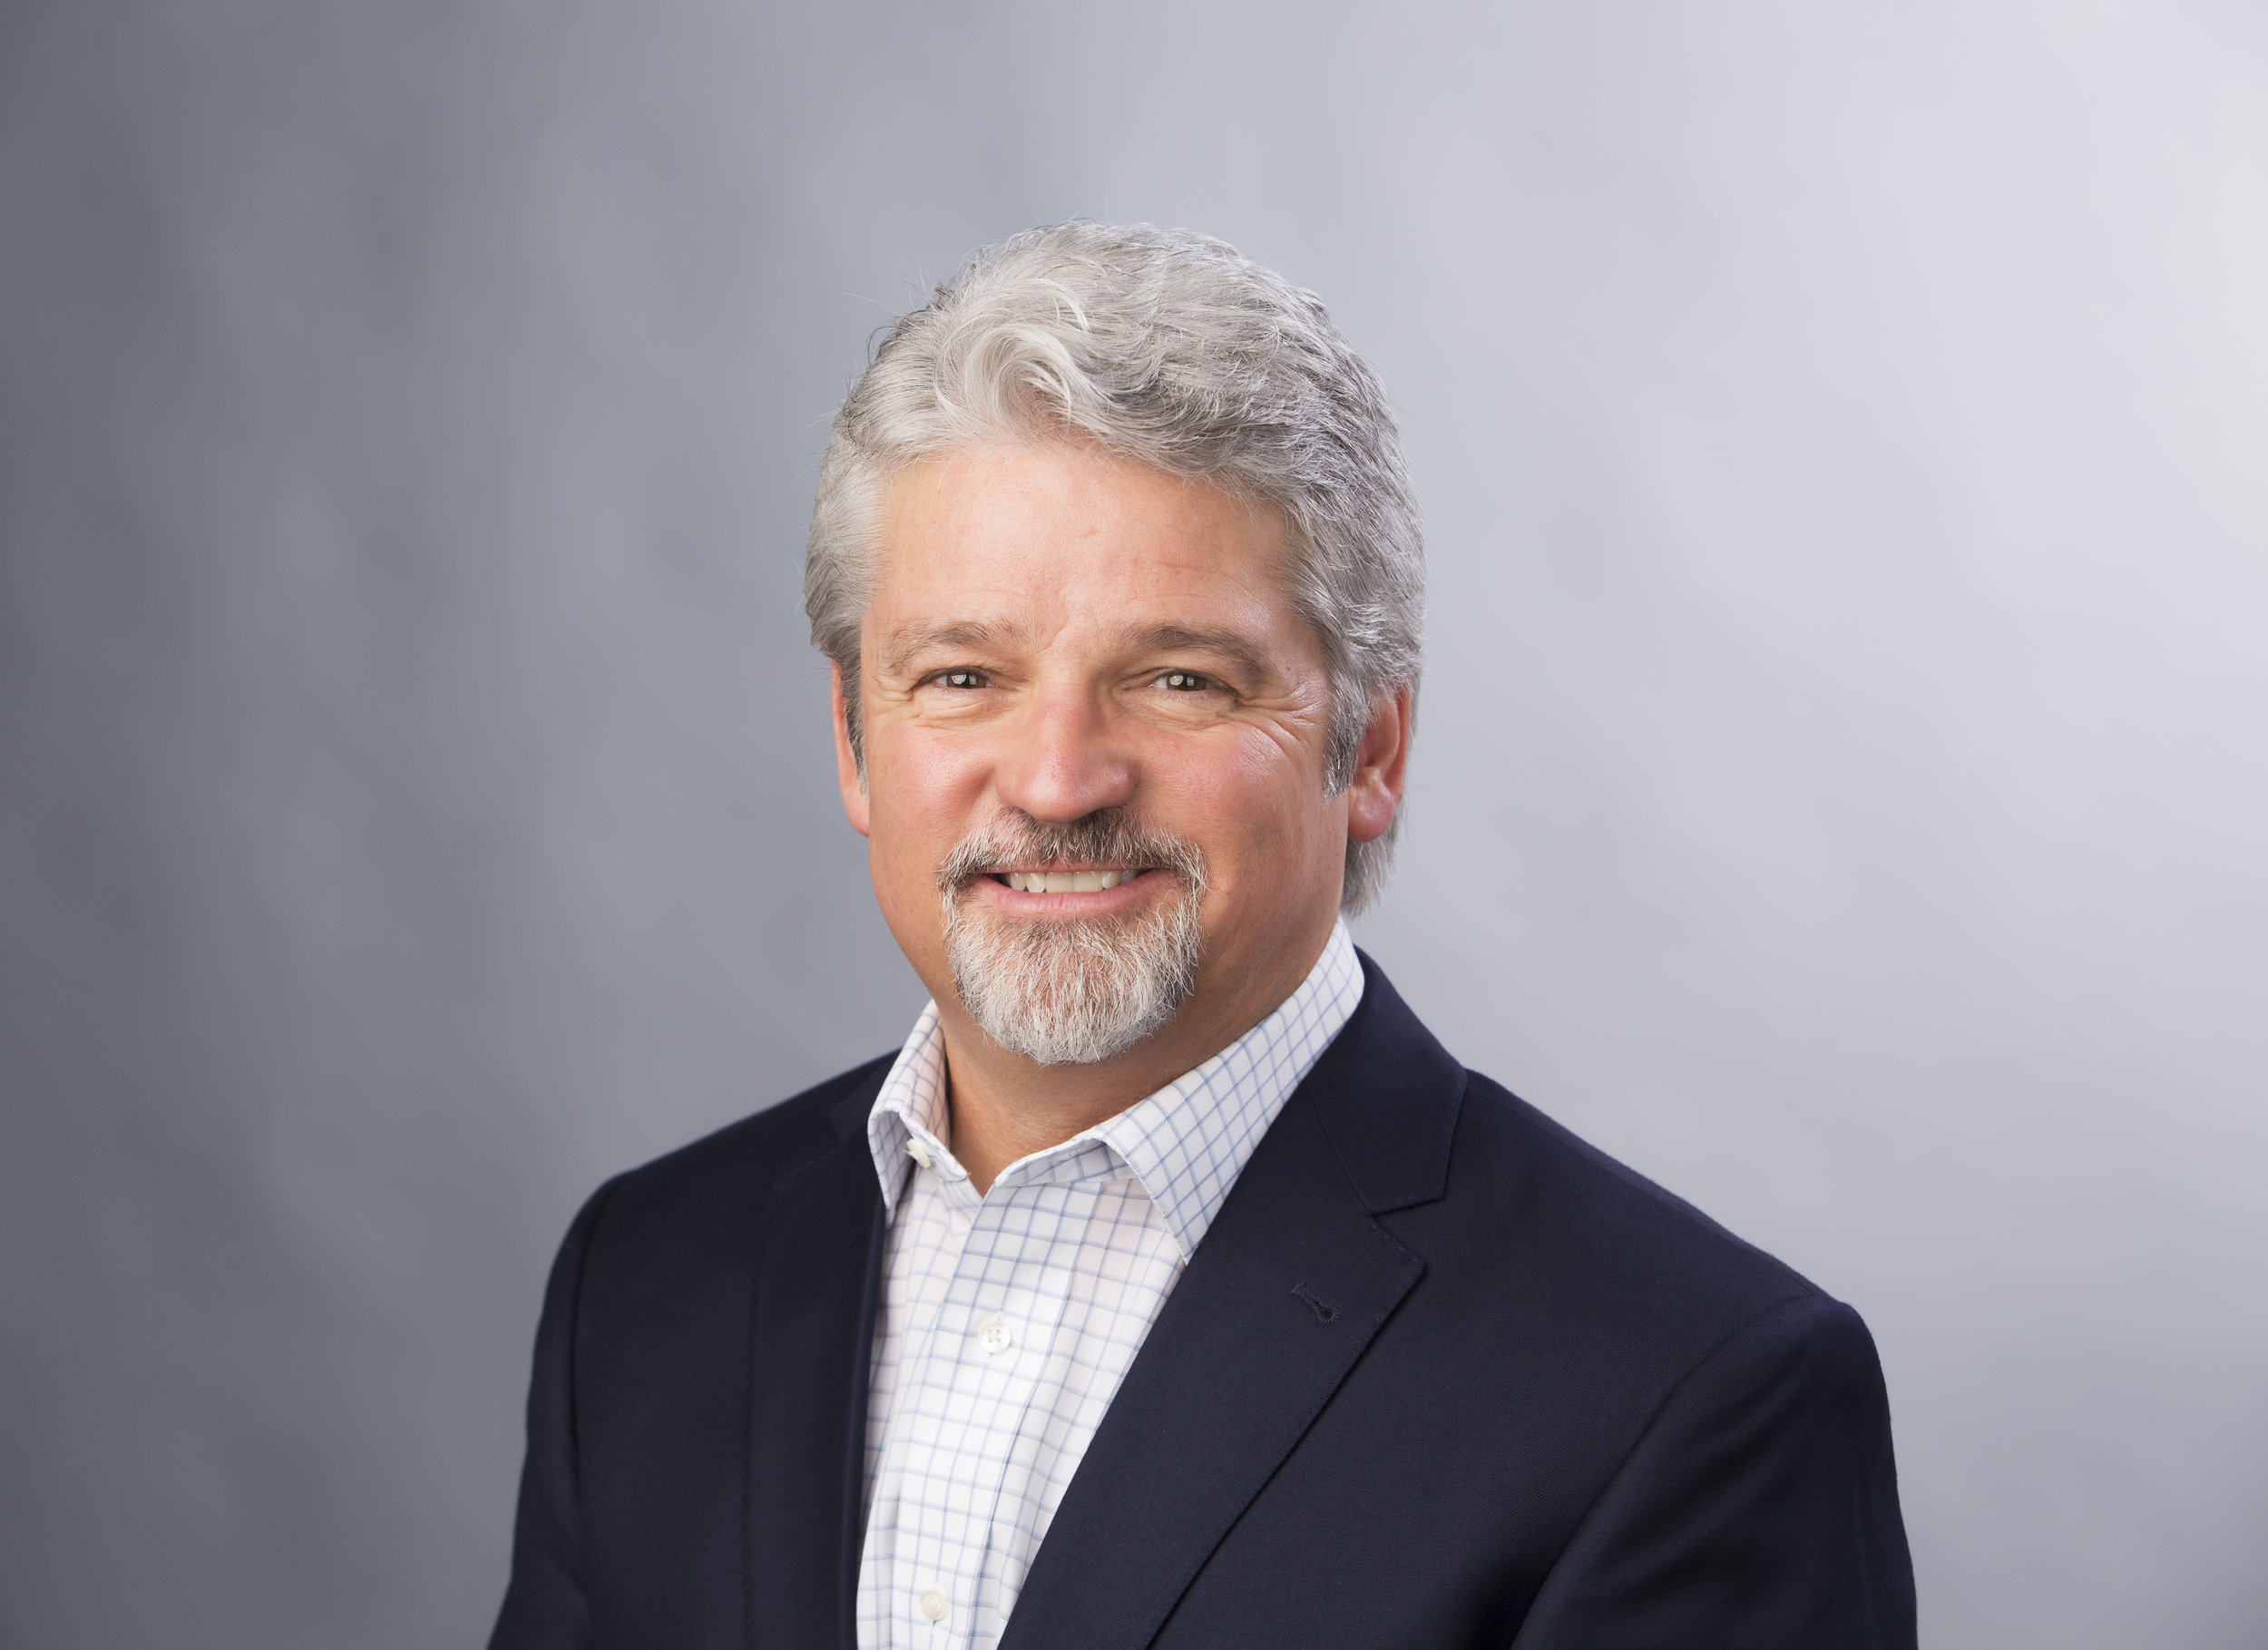 """""""It is a privilege to contribute to the development of a company like Carepoynt, which is led by a great founding team and has the potential to materially enhance the quality of patients' lives as well as reduce healthcare costs."""" - - Jay Shepherd, President at Shepherd Growth Partners, Inc., Carepoynt Investor"""